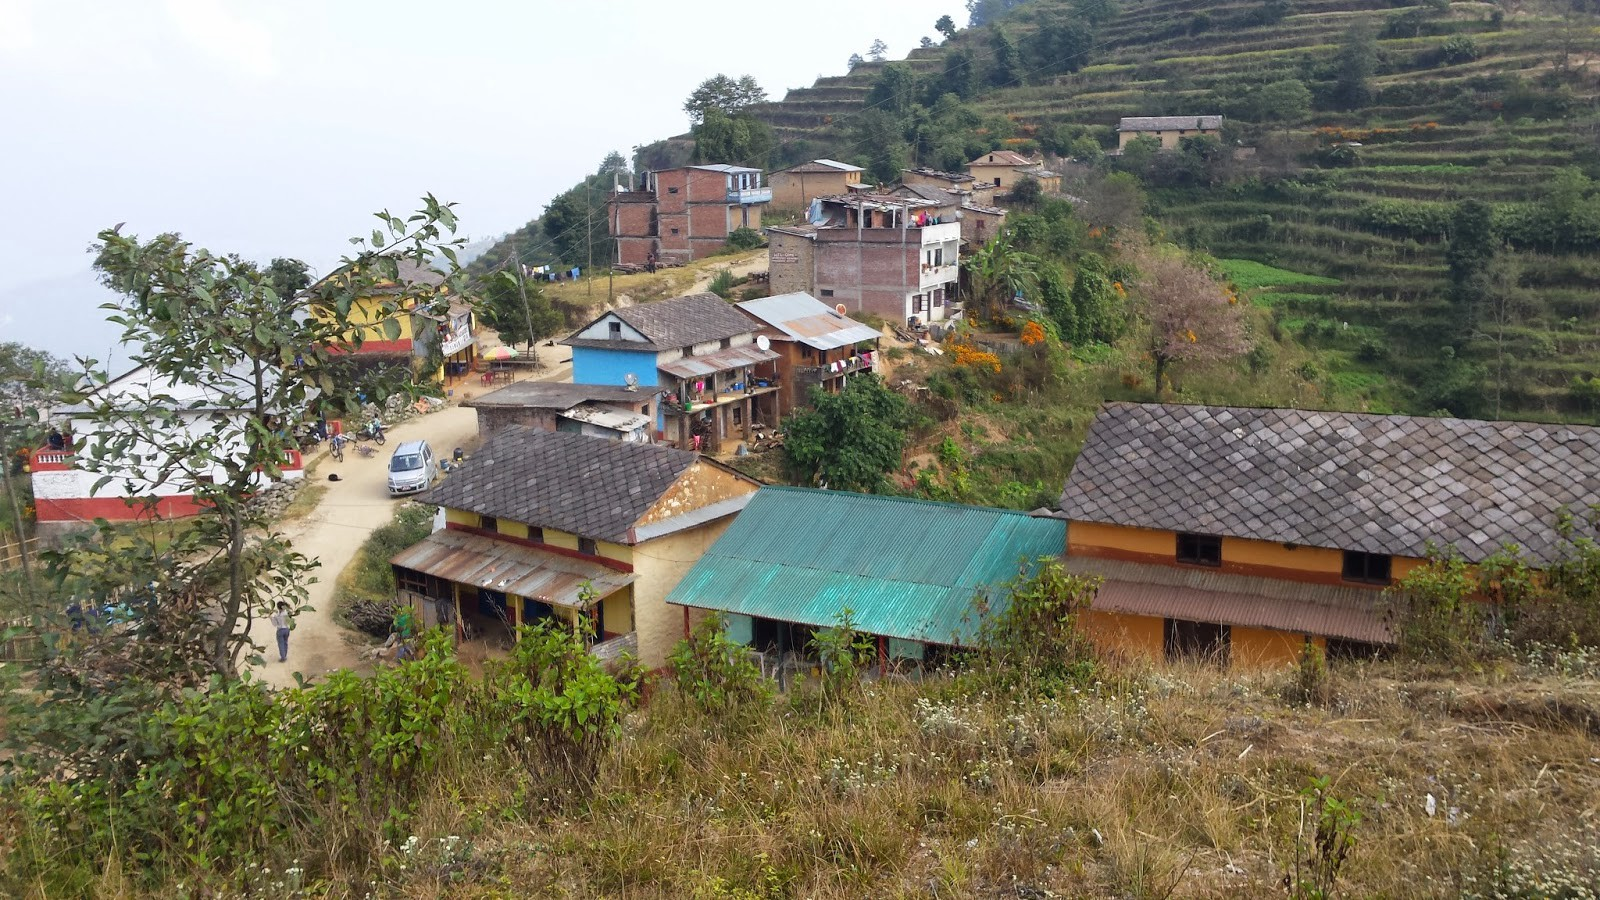 This is actually a different Nepali village that I visited earlier that week, but it's a better picture.